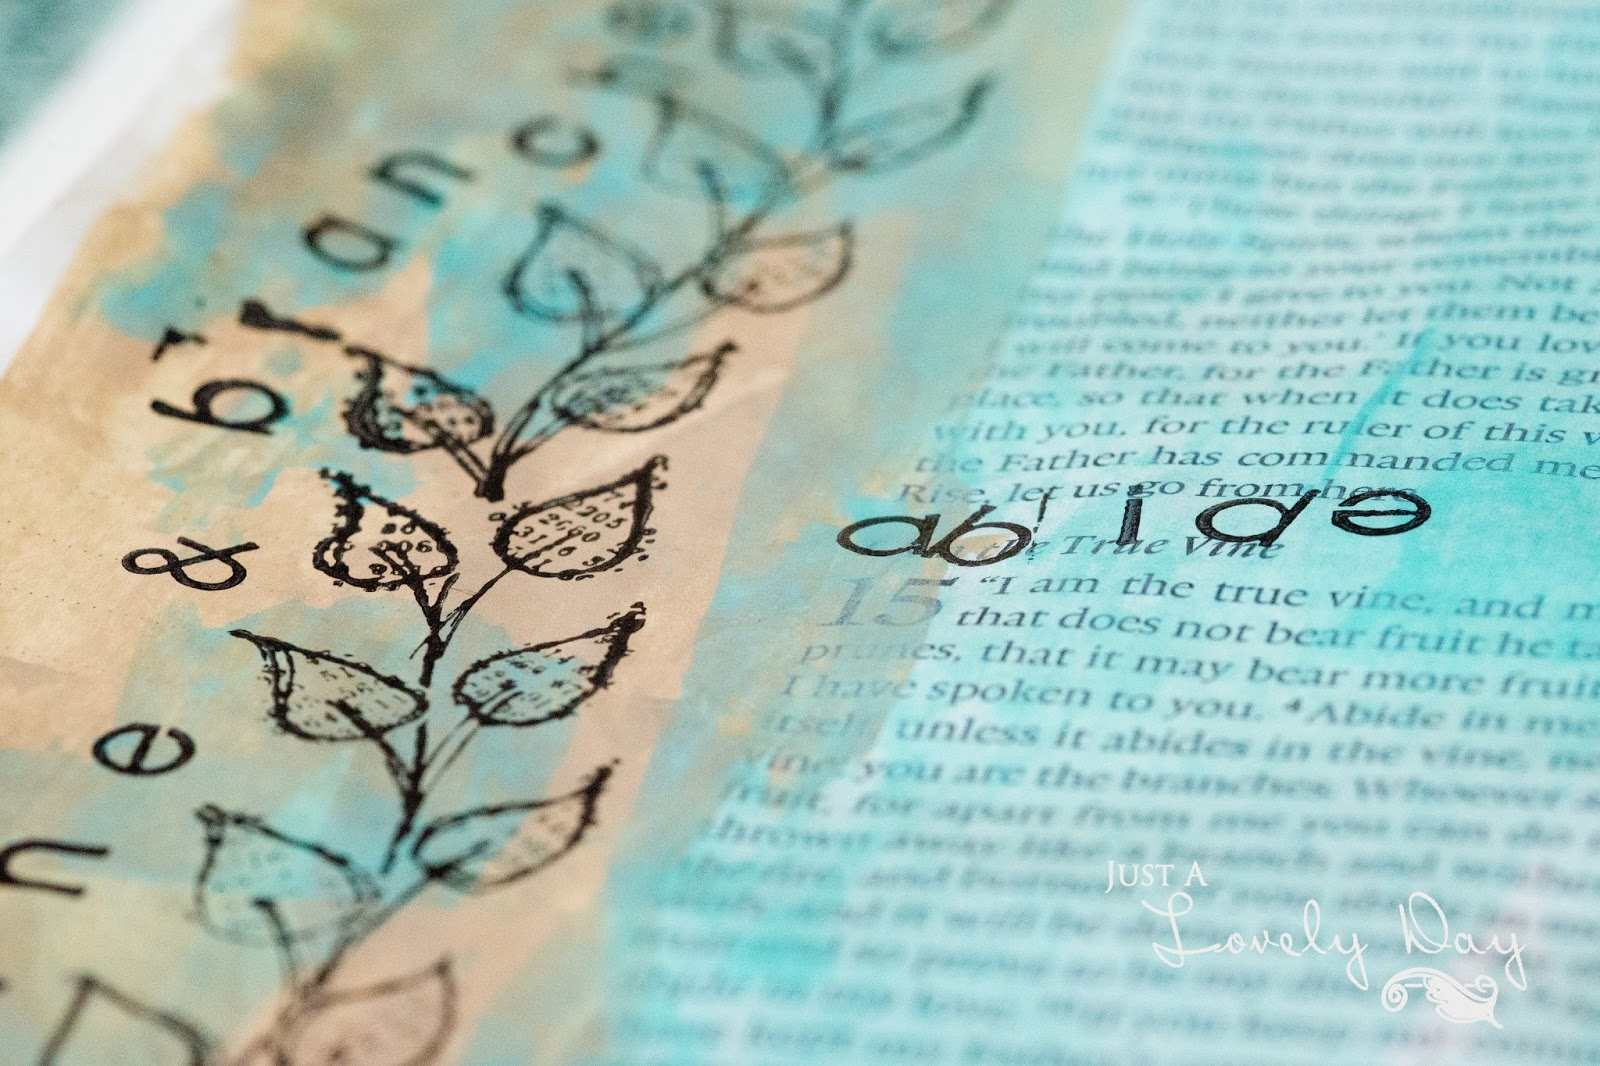 Reflections on tenacious love plus relationship as vine & branches – themes from 1 John 4 and John 15.